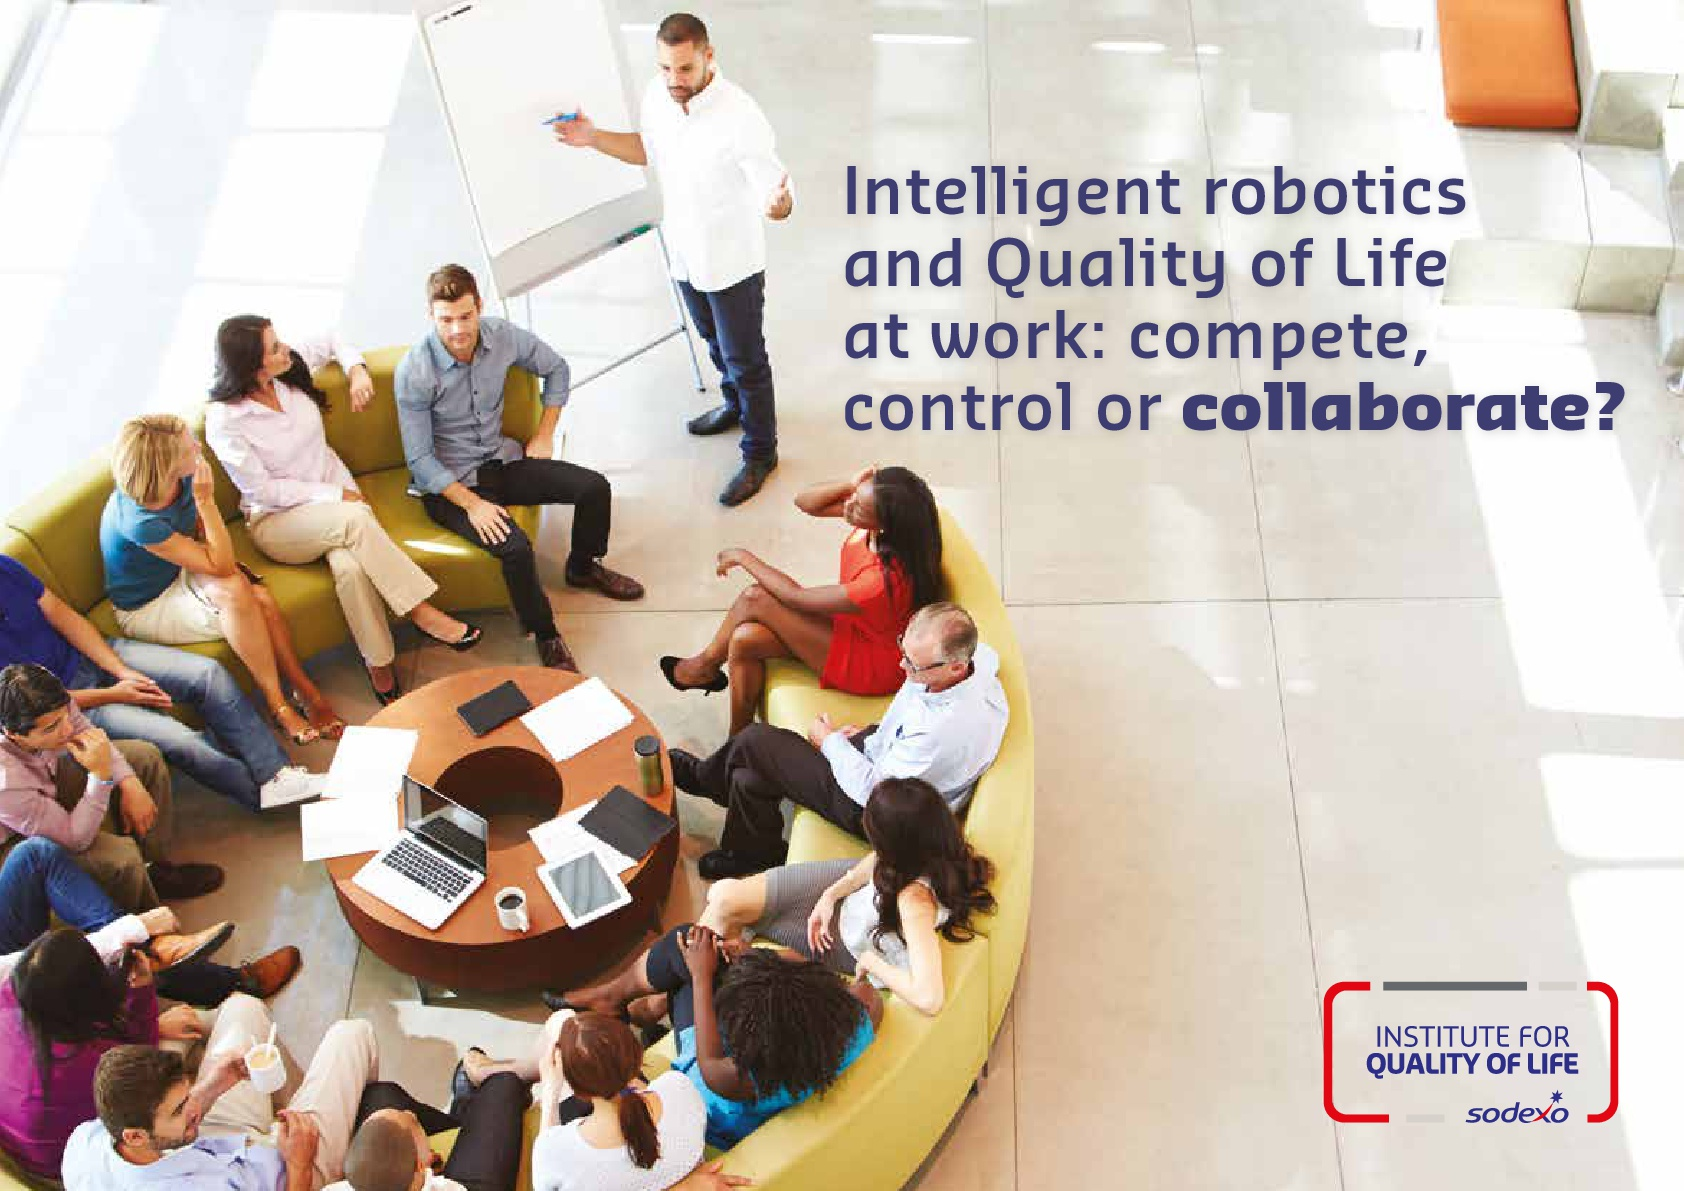 Intelligent robotics and Quality of Life at work: compete, control or collaborate?